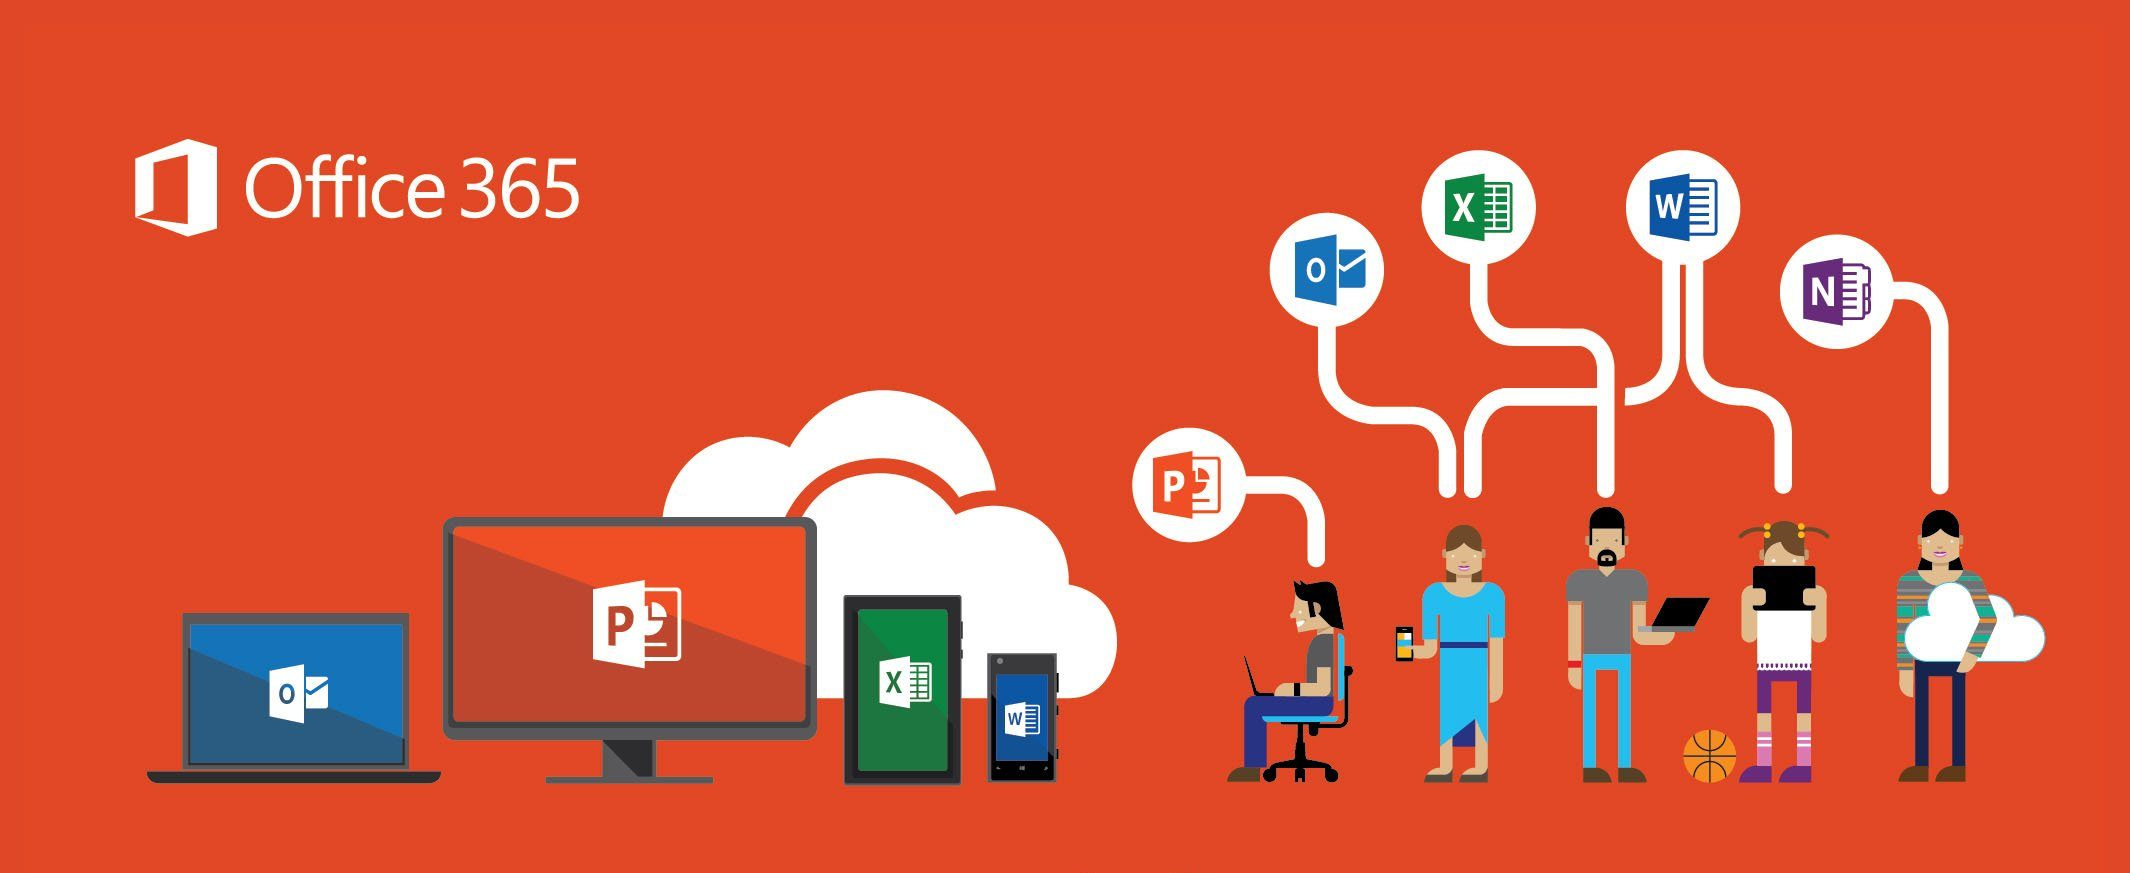 office 2010 bootstrapper with key and activation